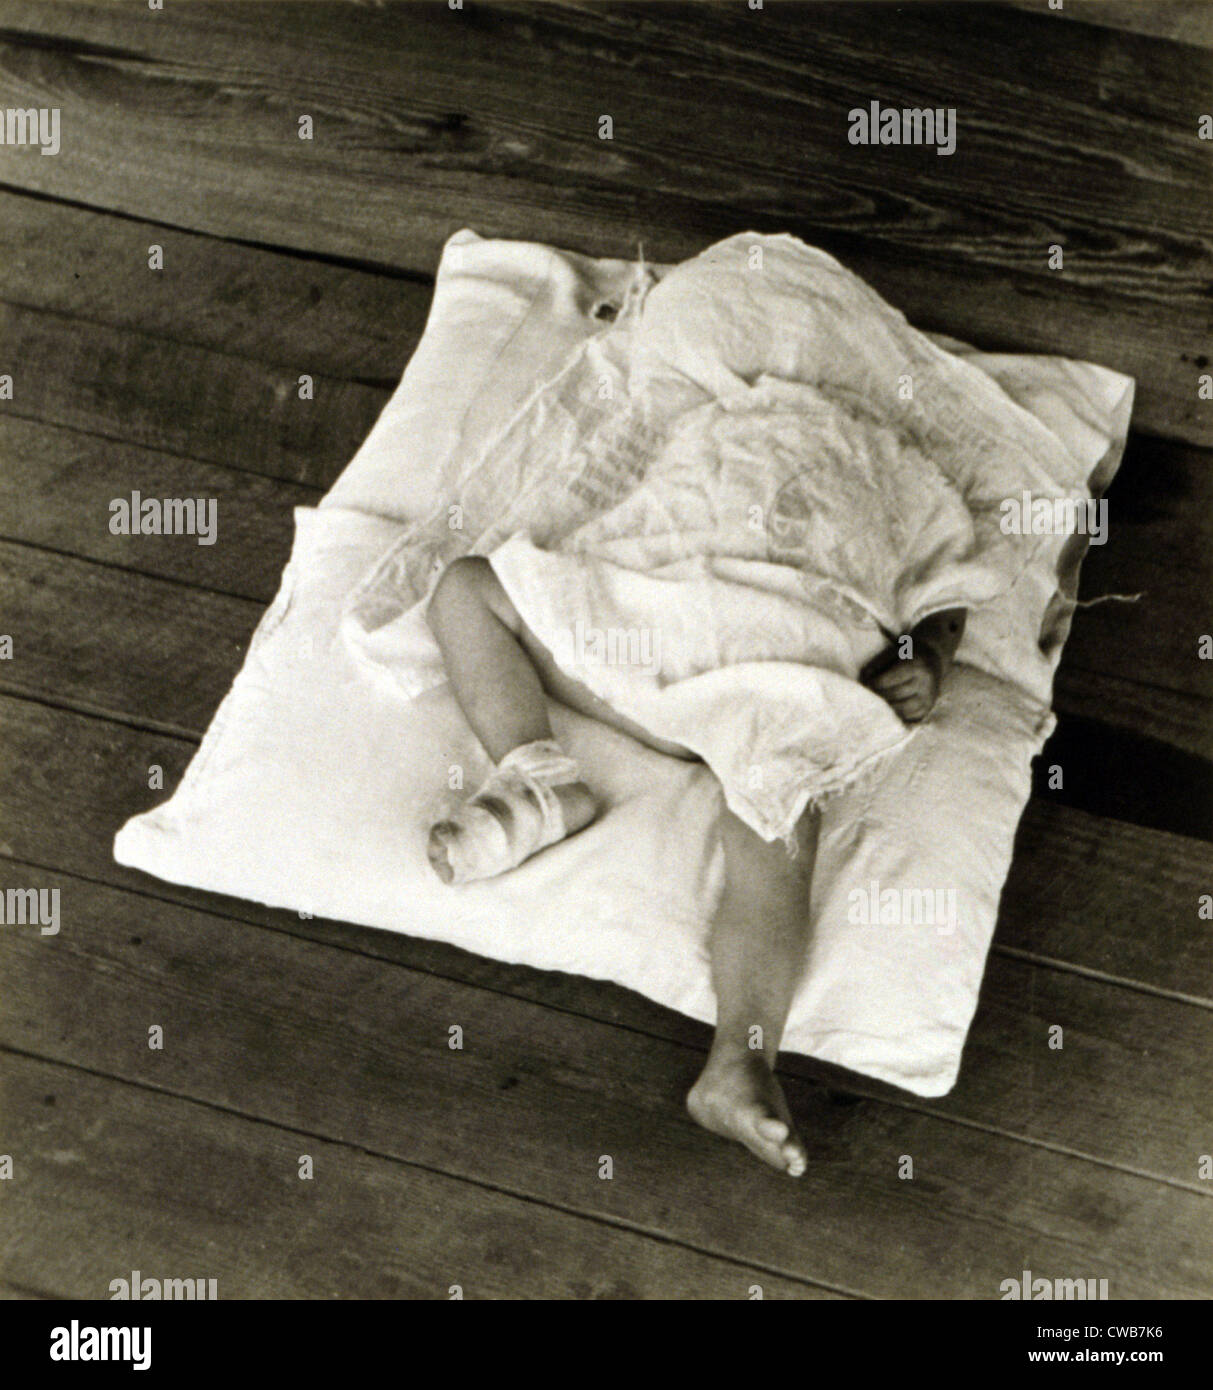 Squeakie asleep. Othel Lee, known as Squeakie, son of Floyd Burroughs, sharecropper. Hale County, Alabama. Published - Stock Image